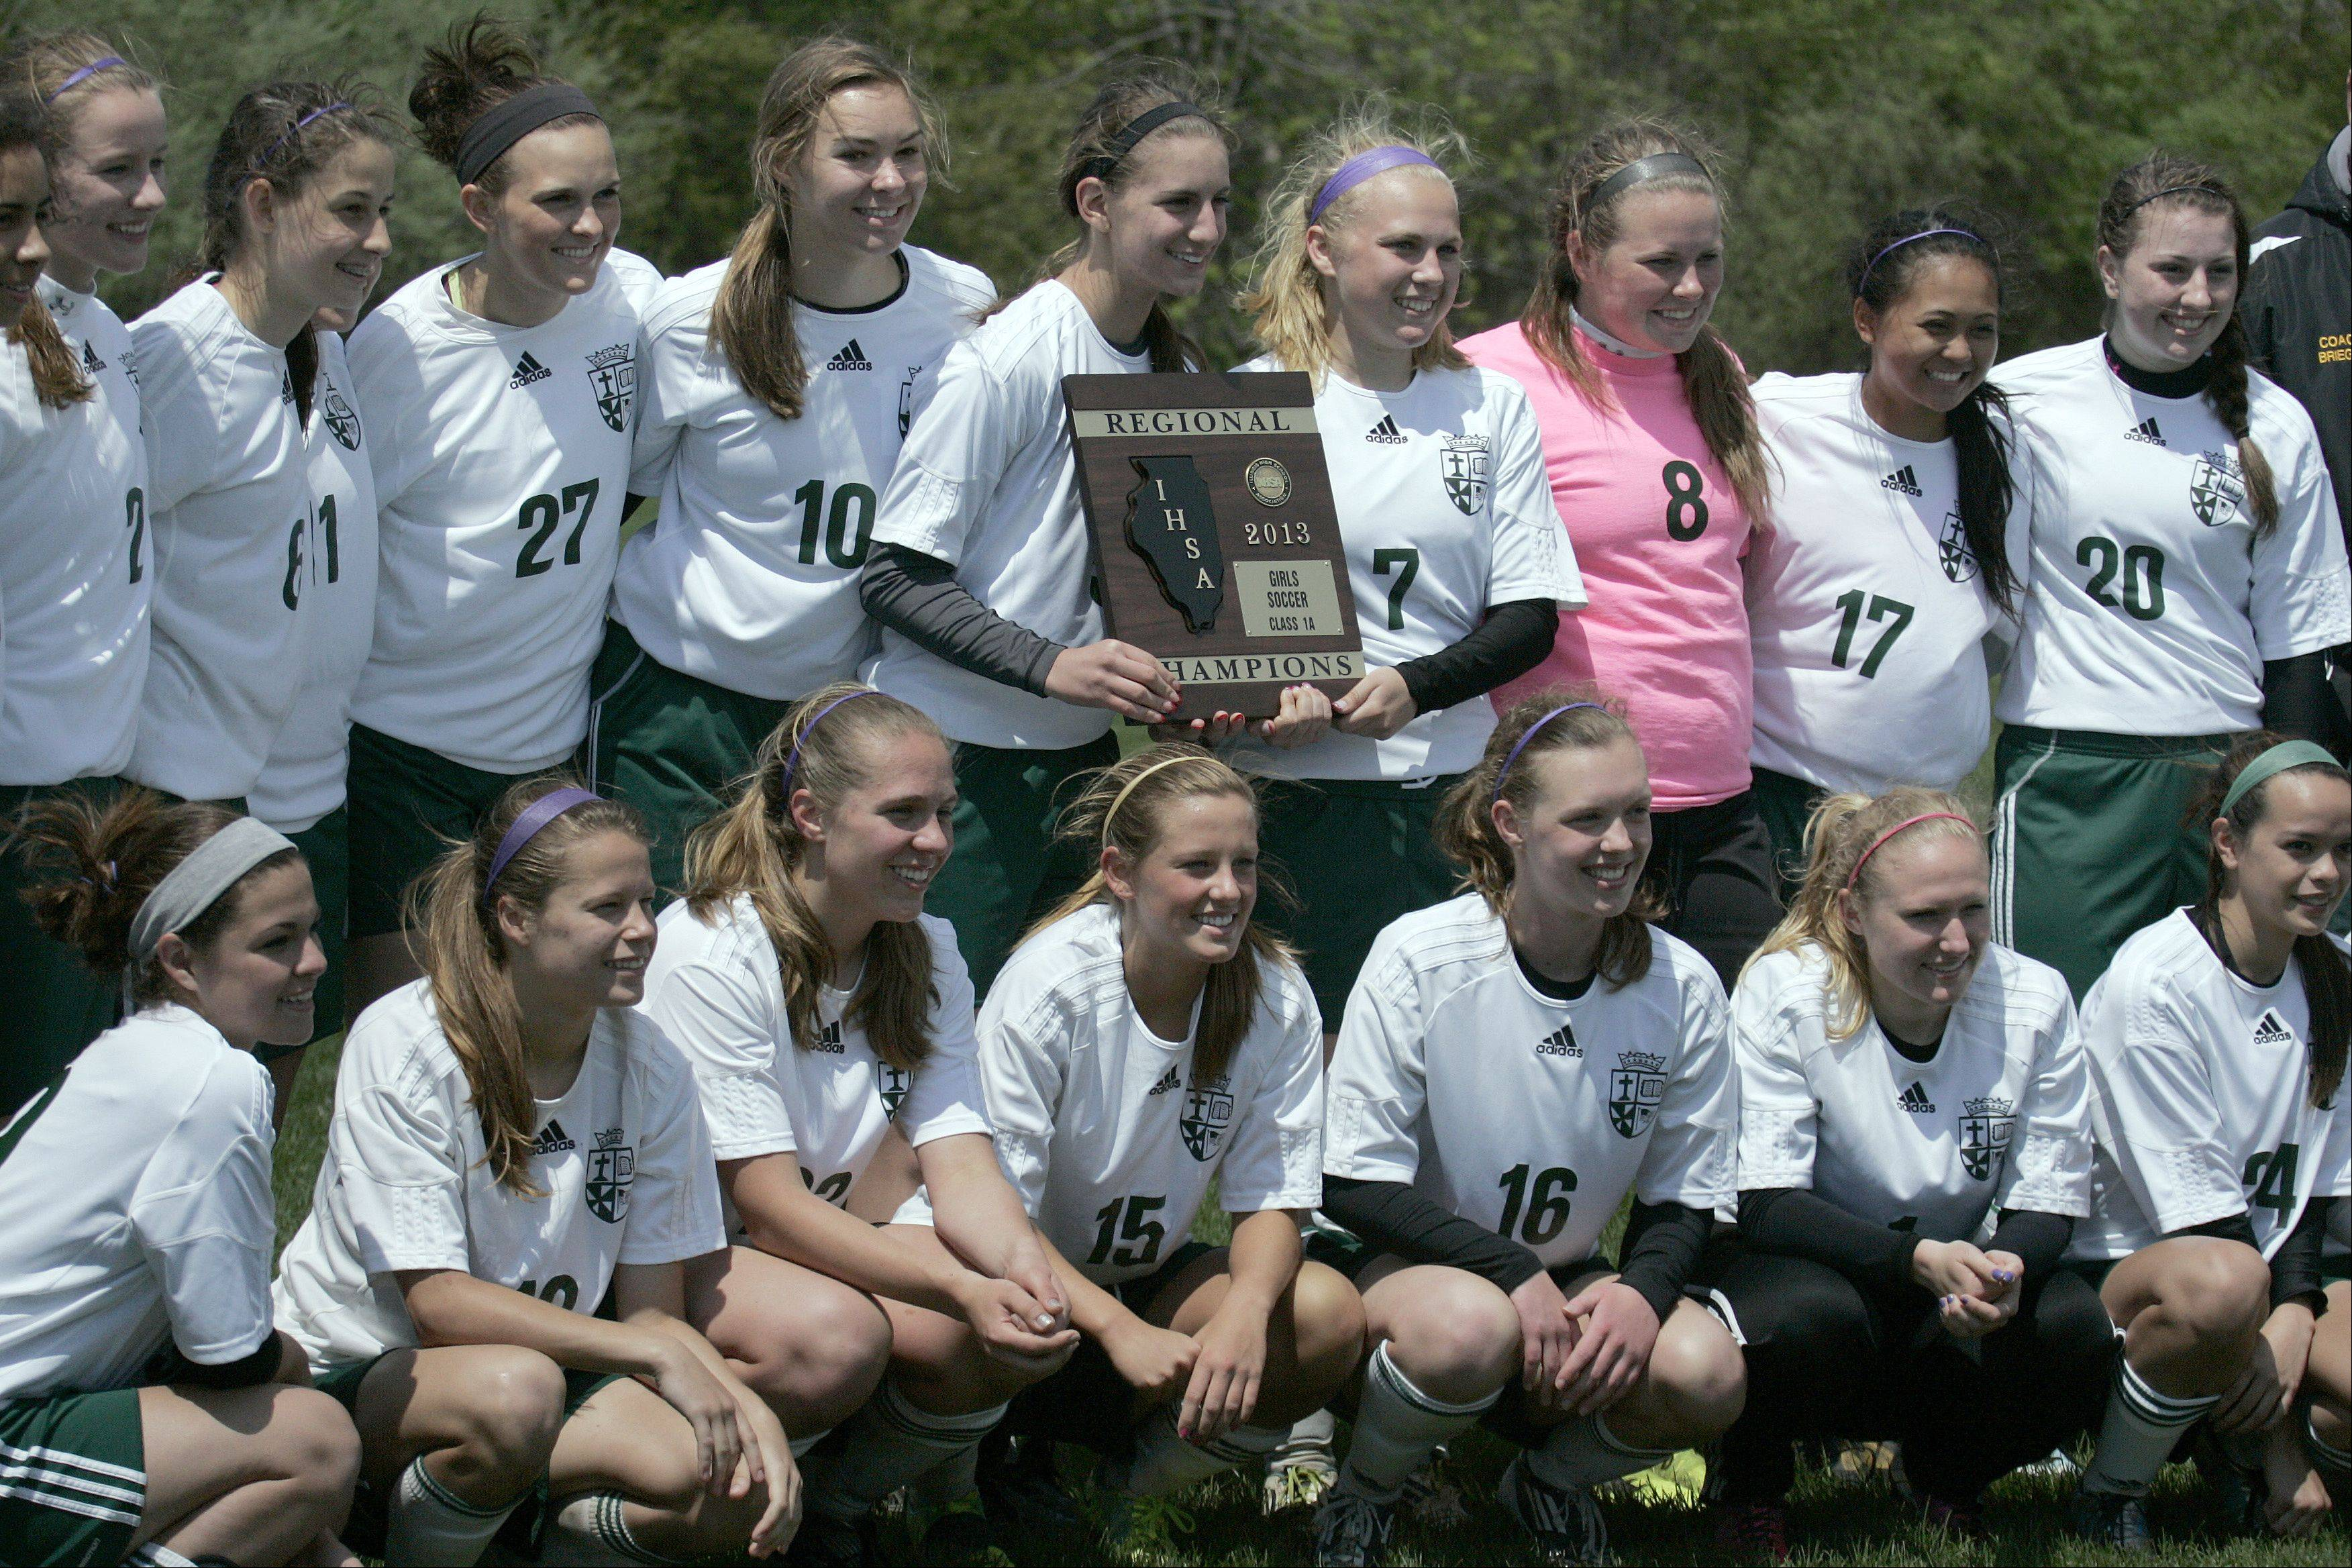 St. Edward's girls soccer team poses for a picture Saturday after winning the Class 1A Westminster Christian regional championship.